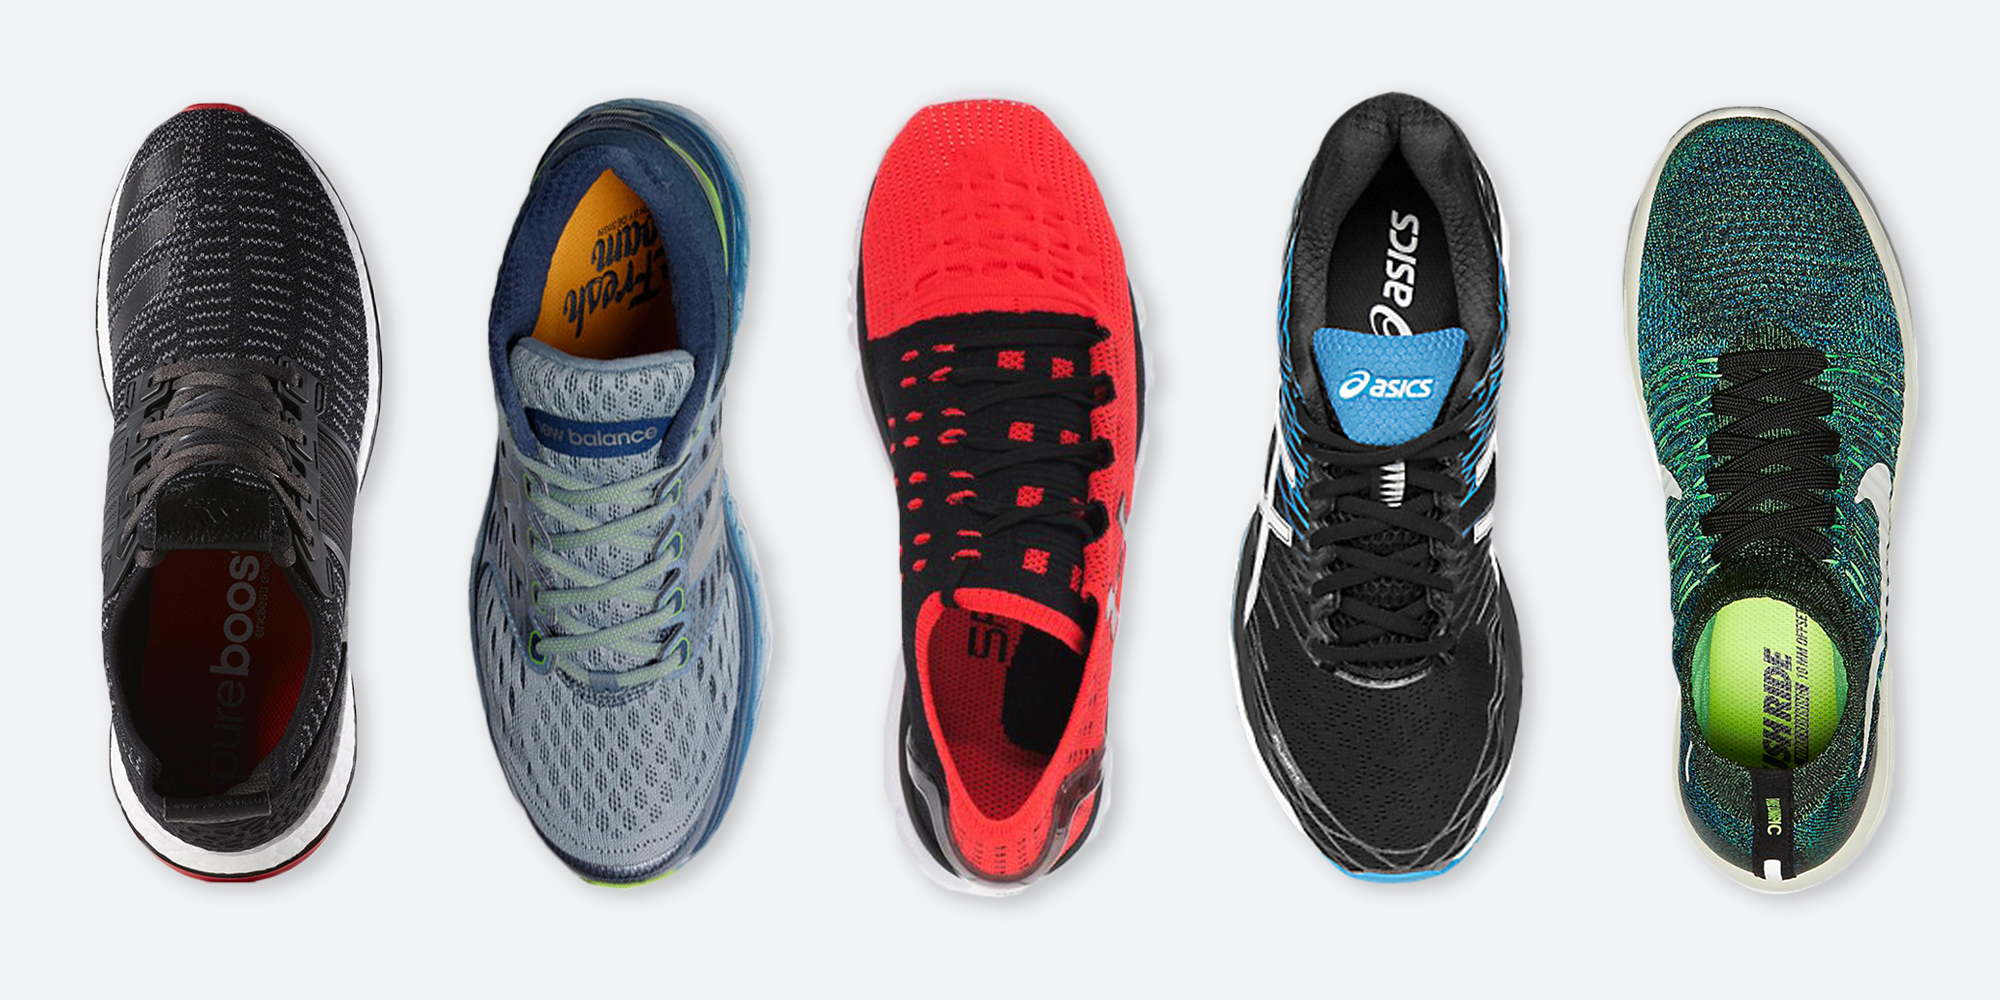 Best Rated Running Shoes Under